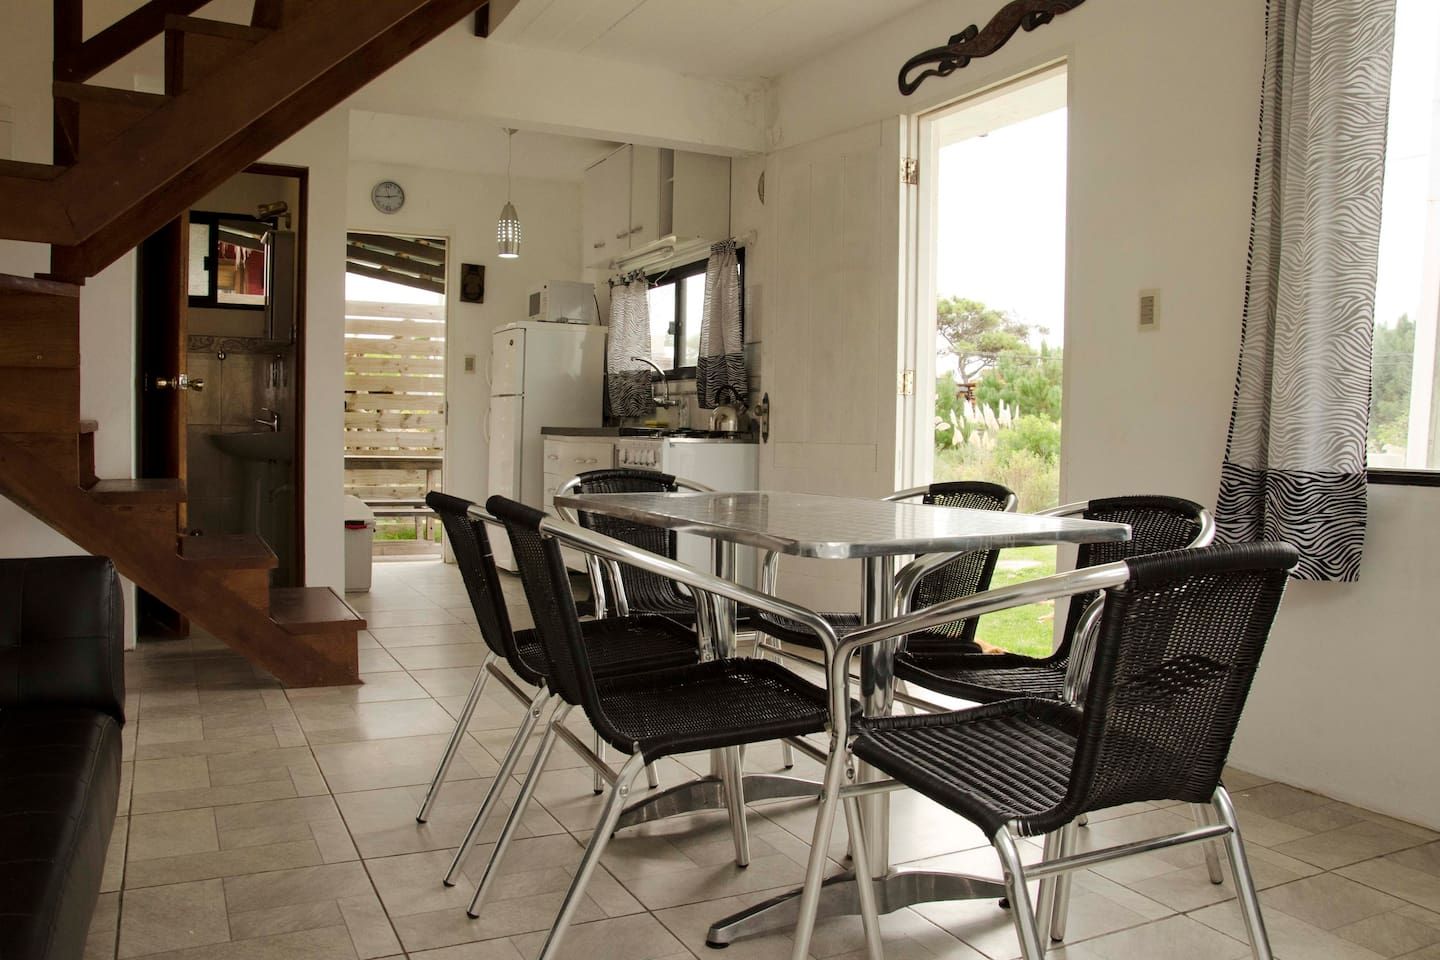 Dining area with room for six.